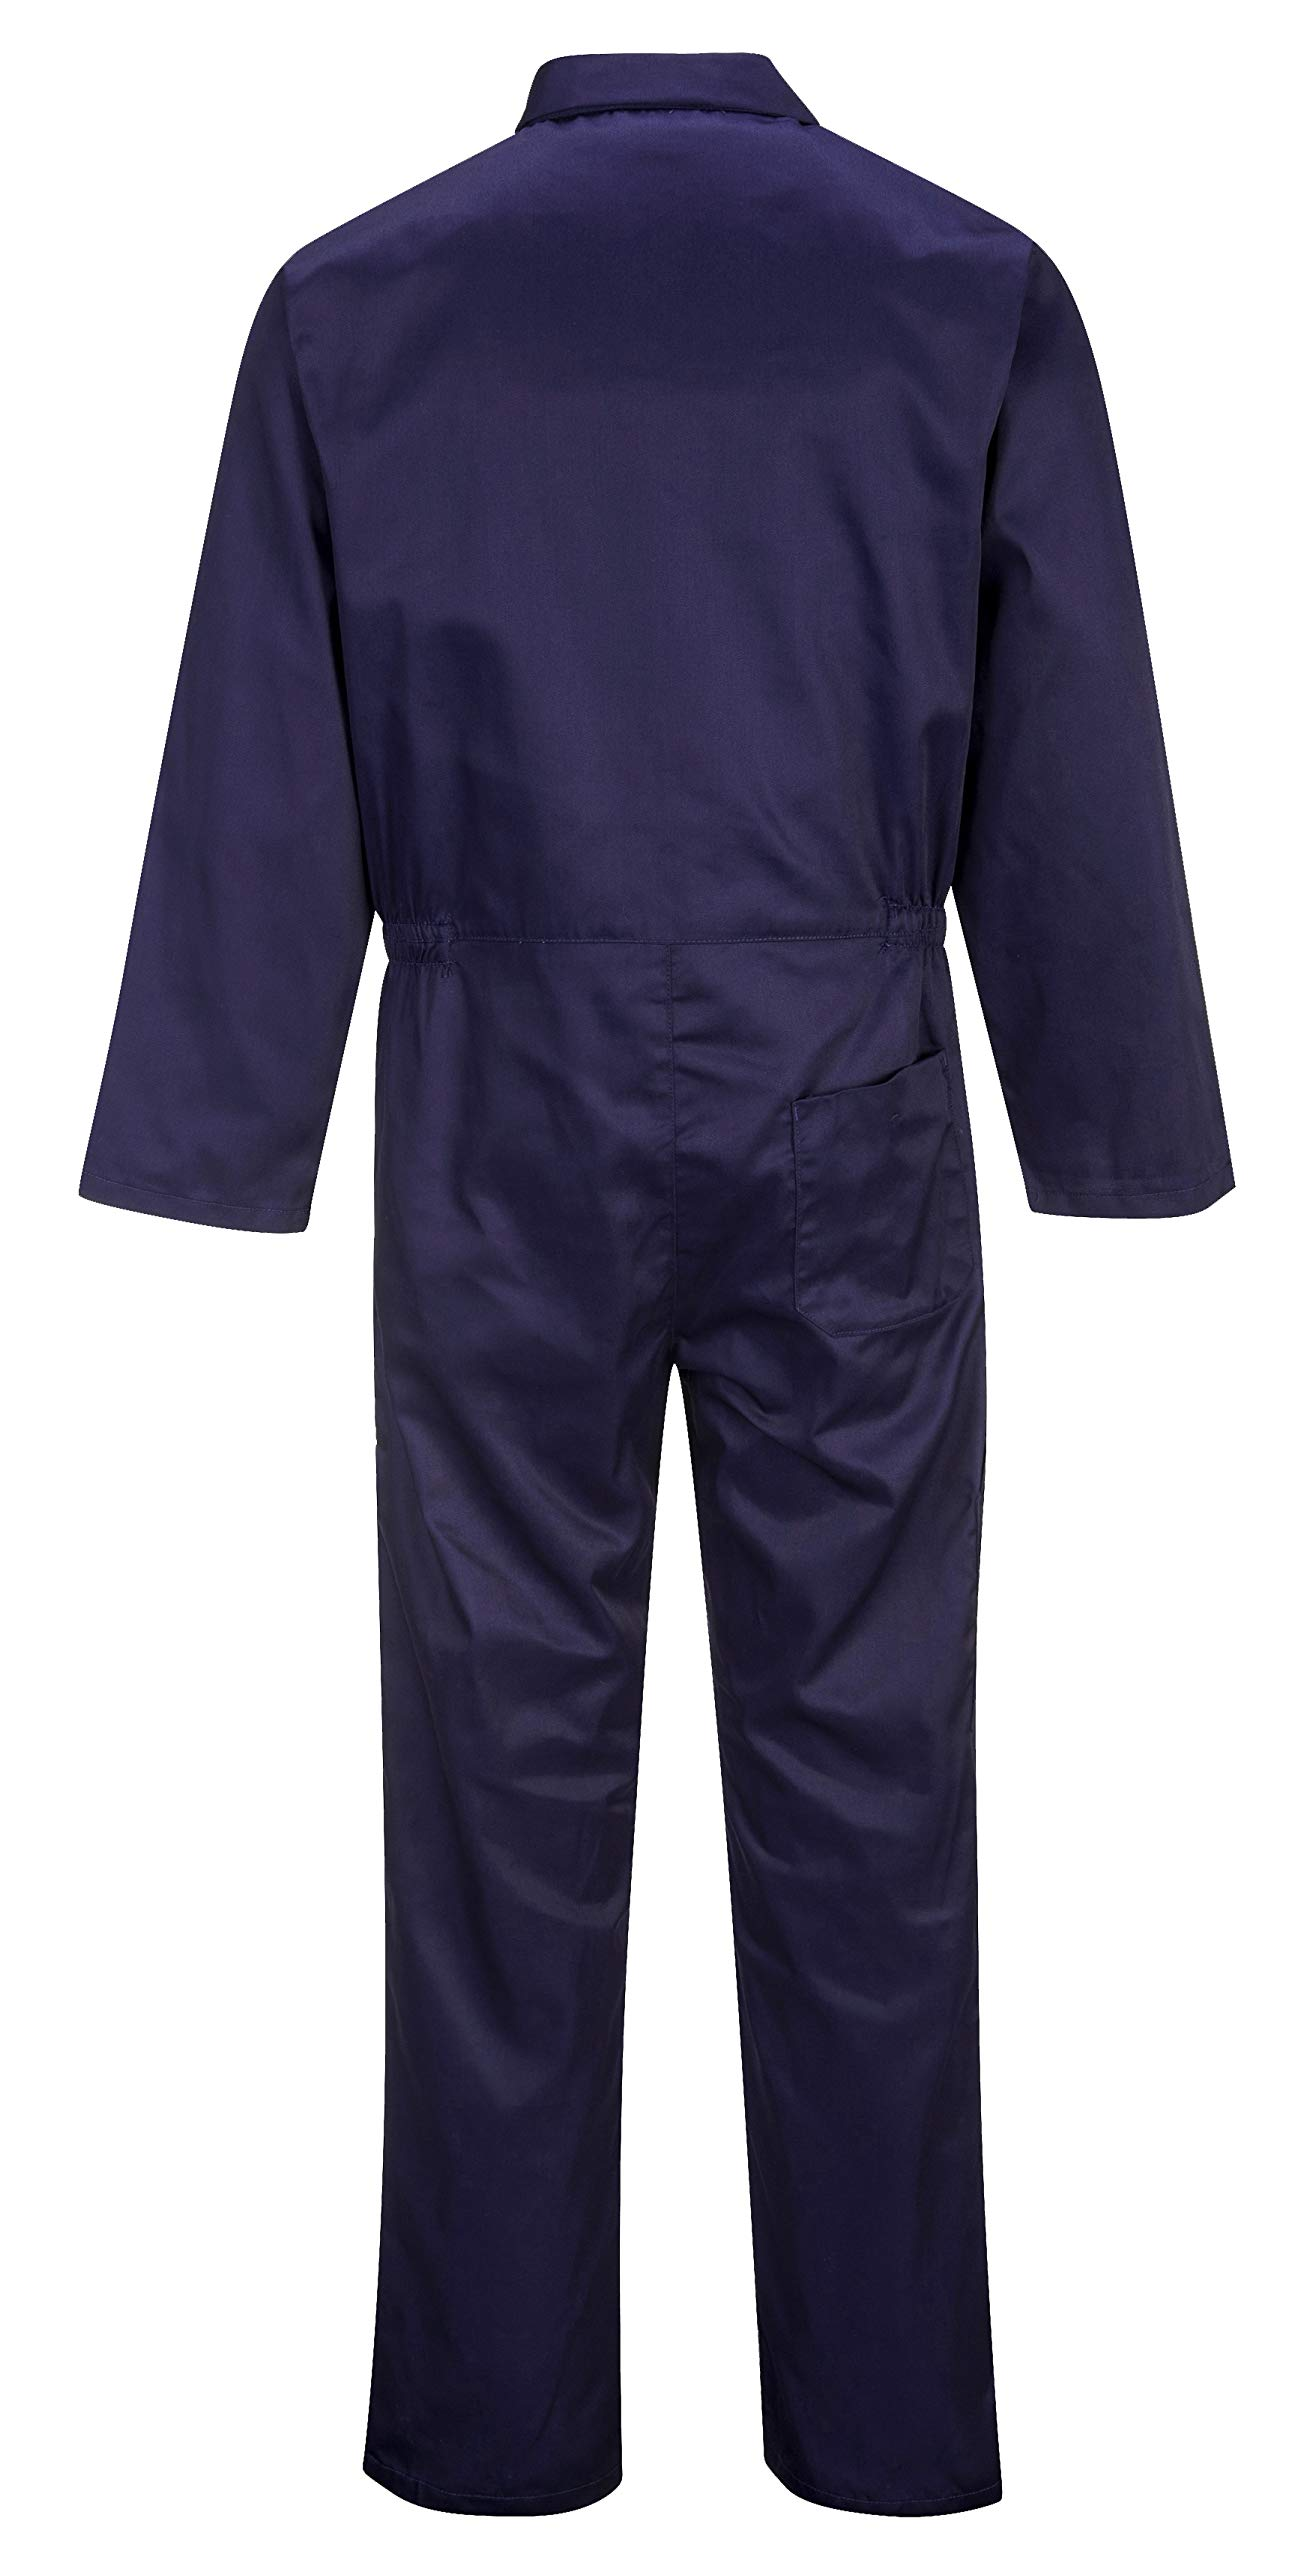 Portwest S999NARXXXL Euro Work Boilersuit, Fabric, 3X-Large, Navy by Portwest (Image #3)